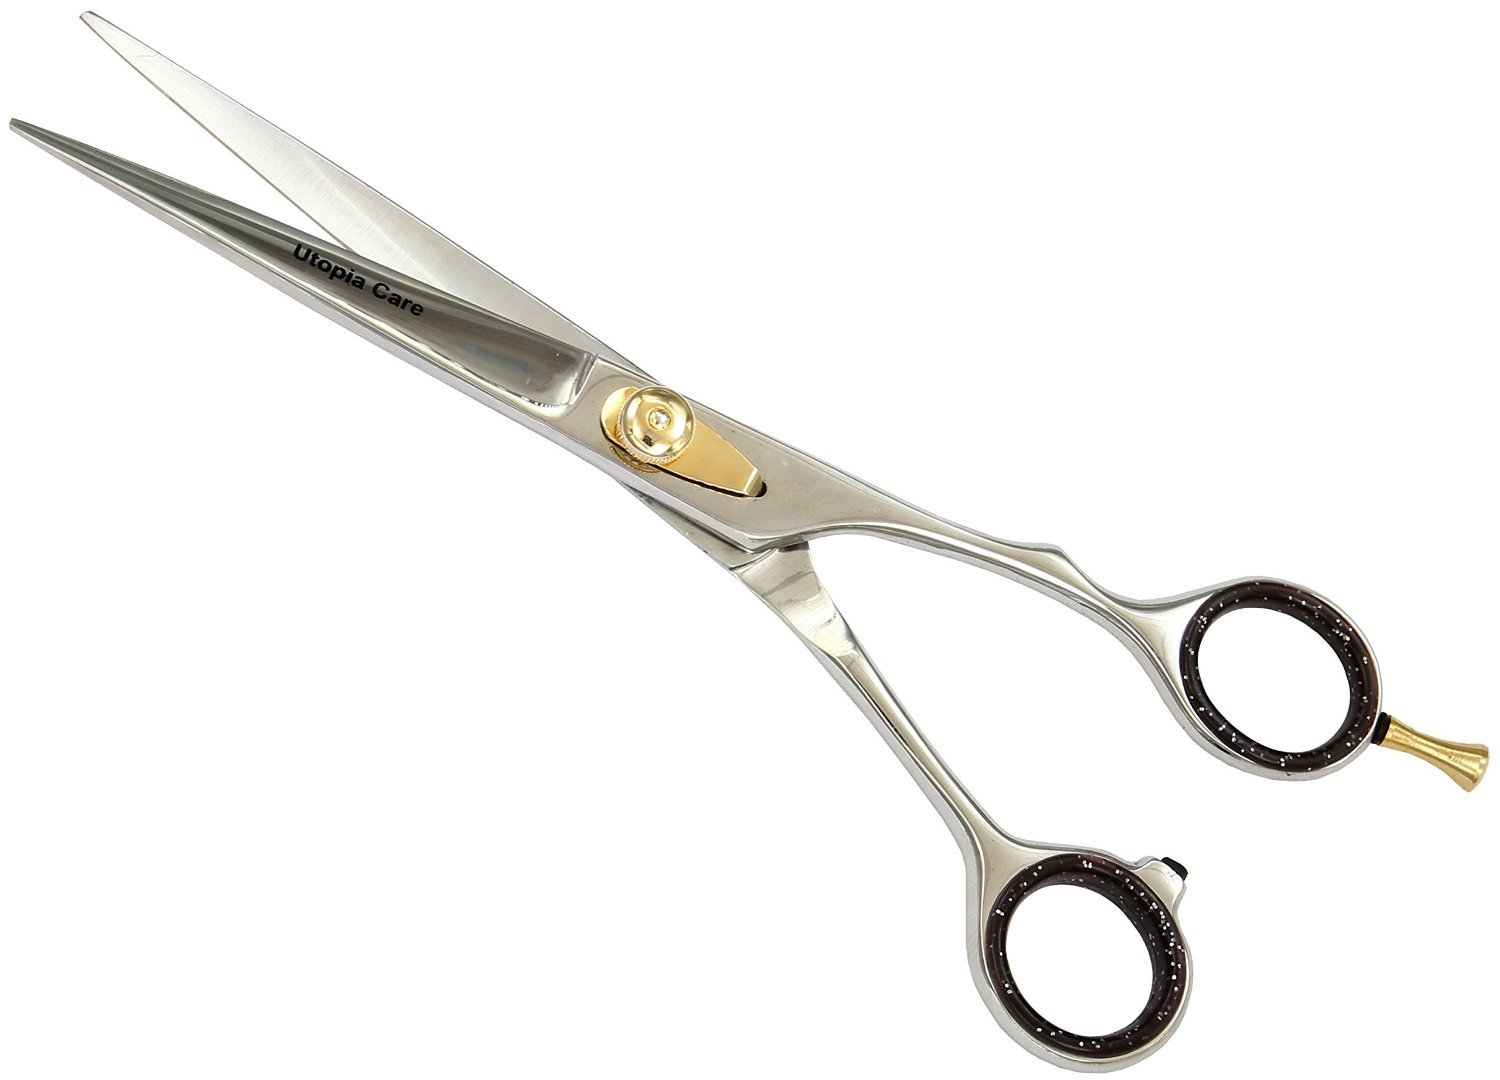 Utopia Care Professional Cutting Hair Shears